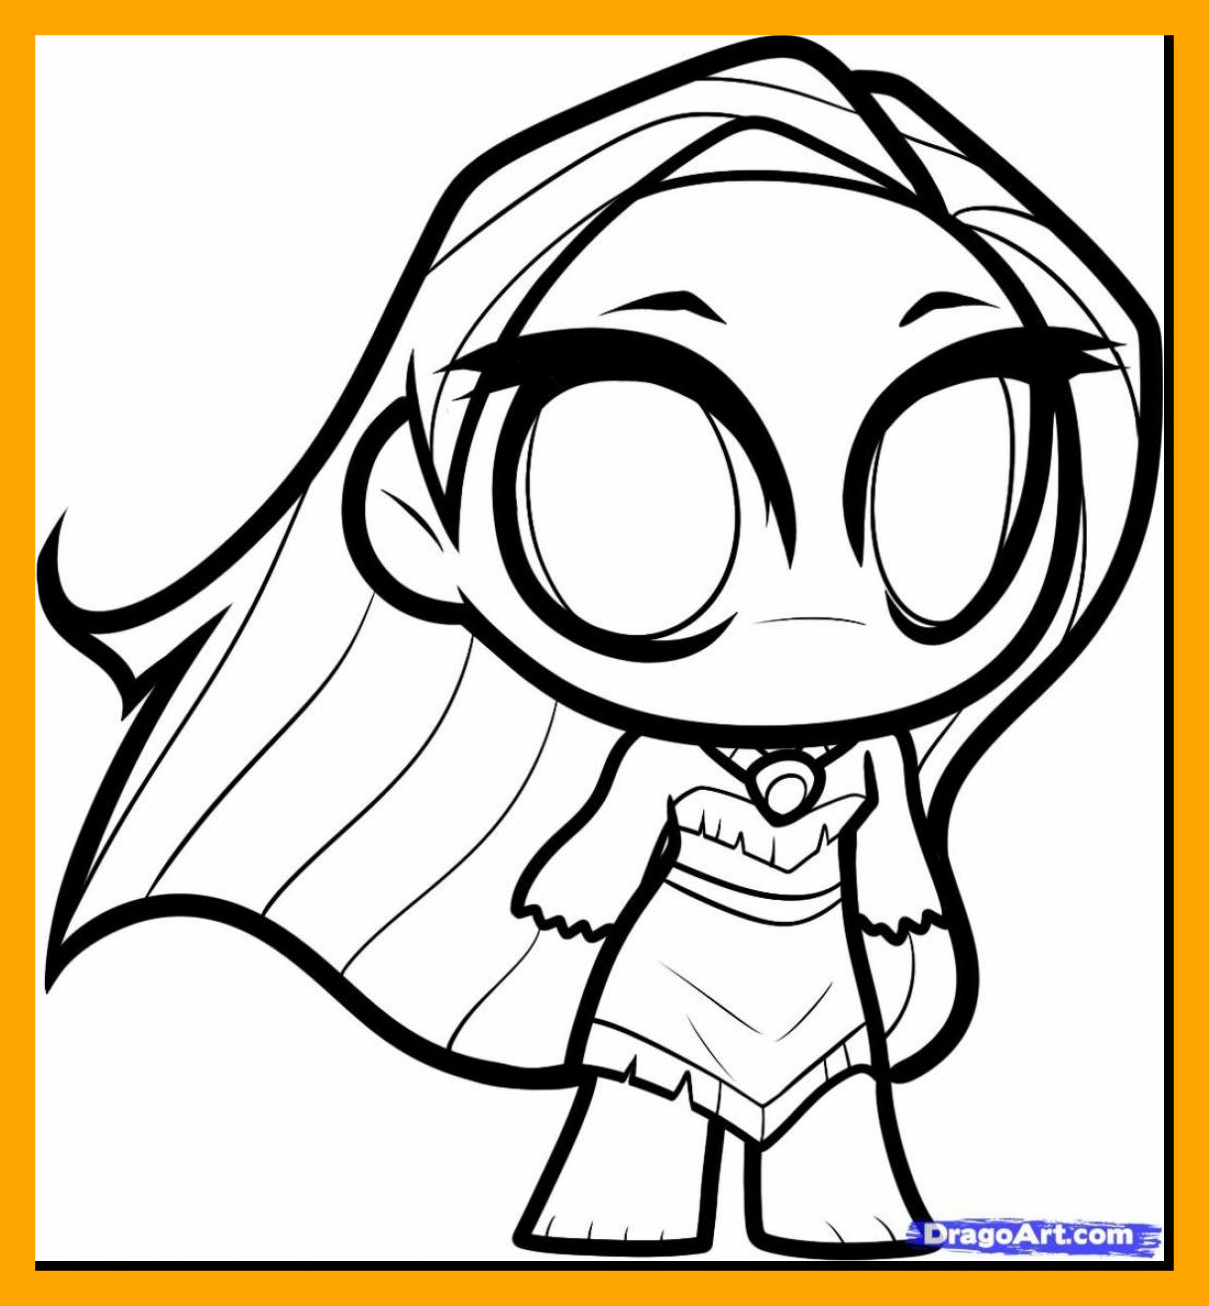 1209x1306 Shocking Printable Chibi Coloring Pages For Kids Pics Of Disney